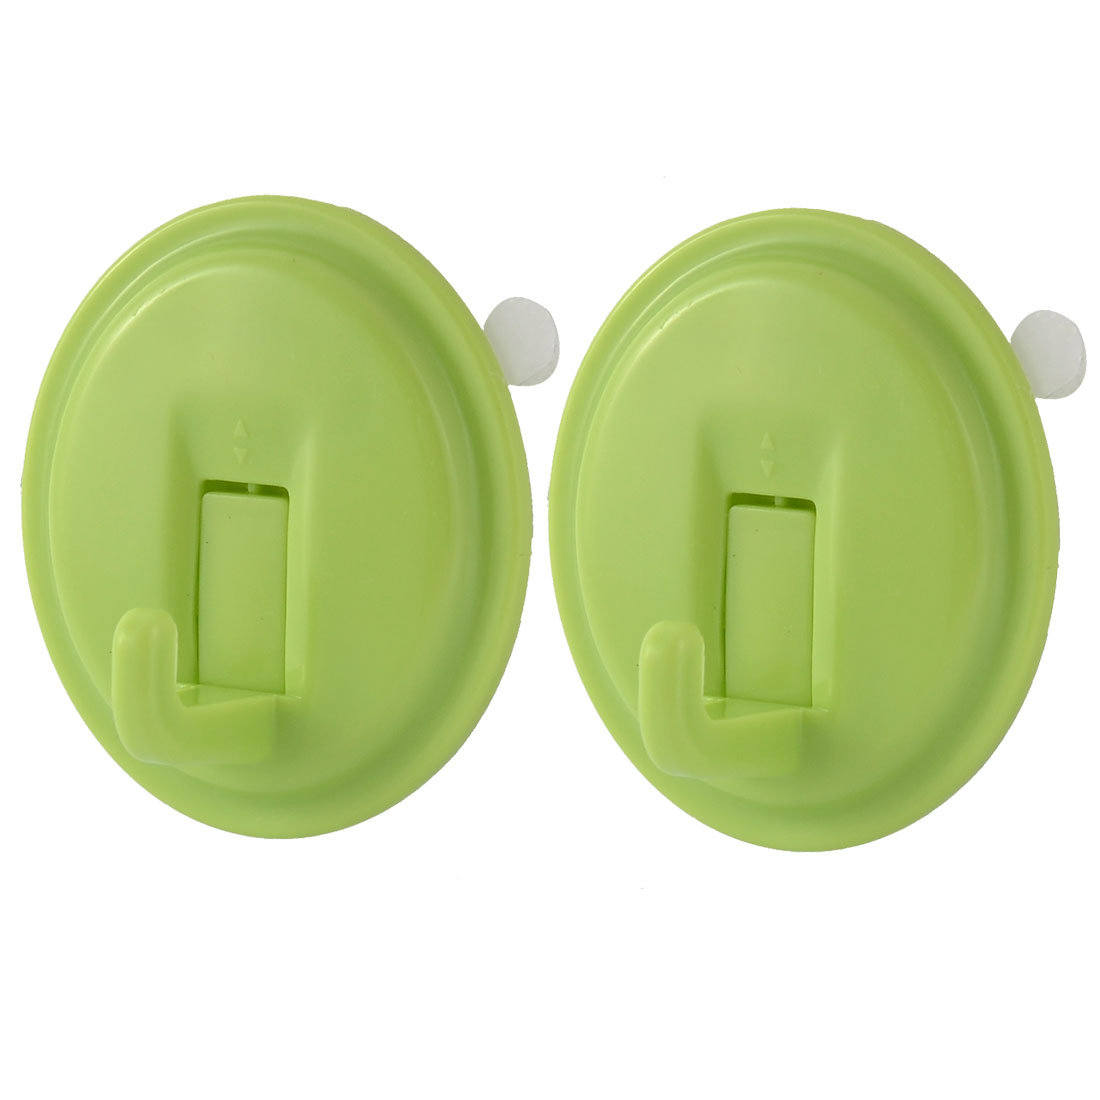 Home Oval Shape No Dent Towel Clothes Hanging Self Adhesive Hook Holder Green 2pcs